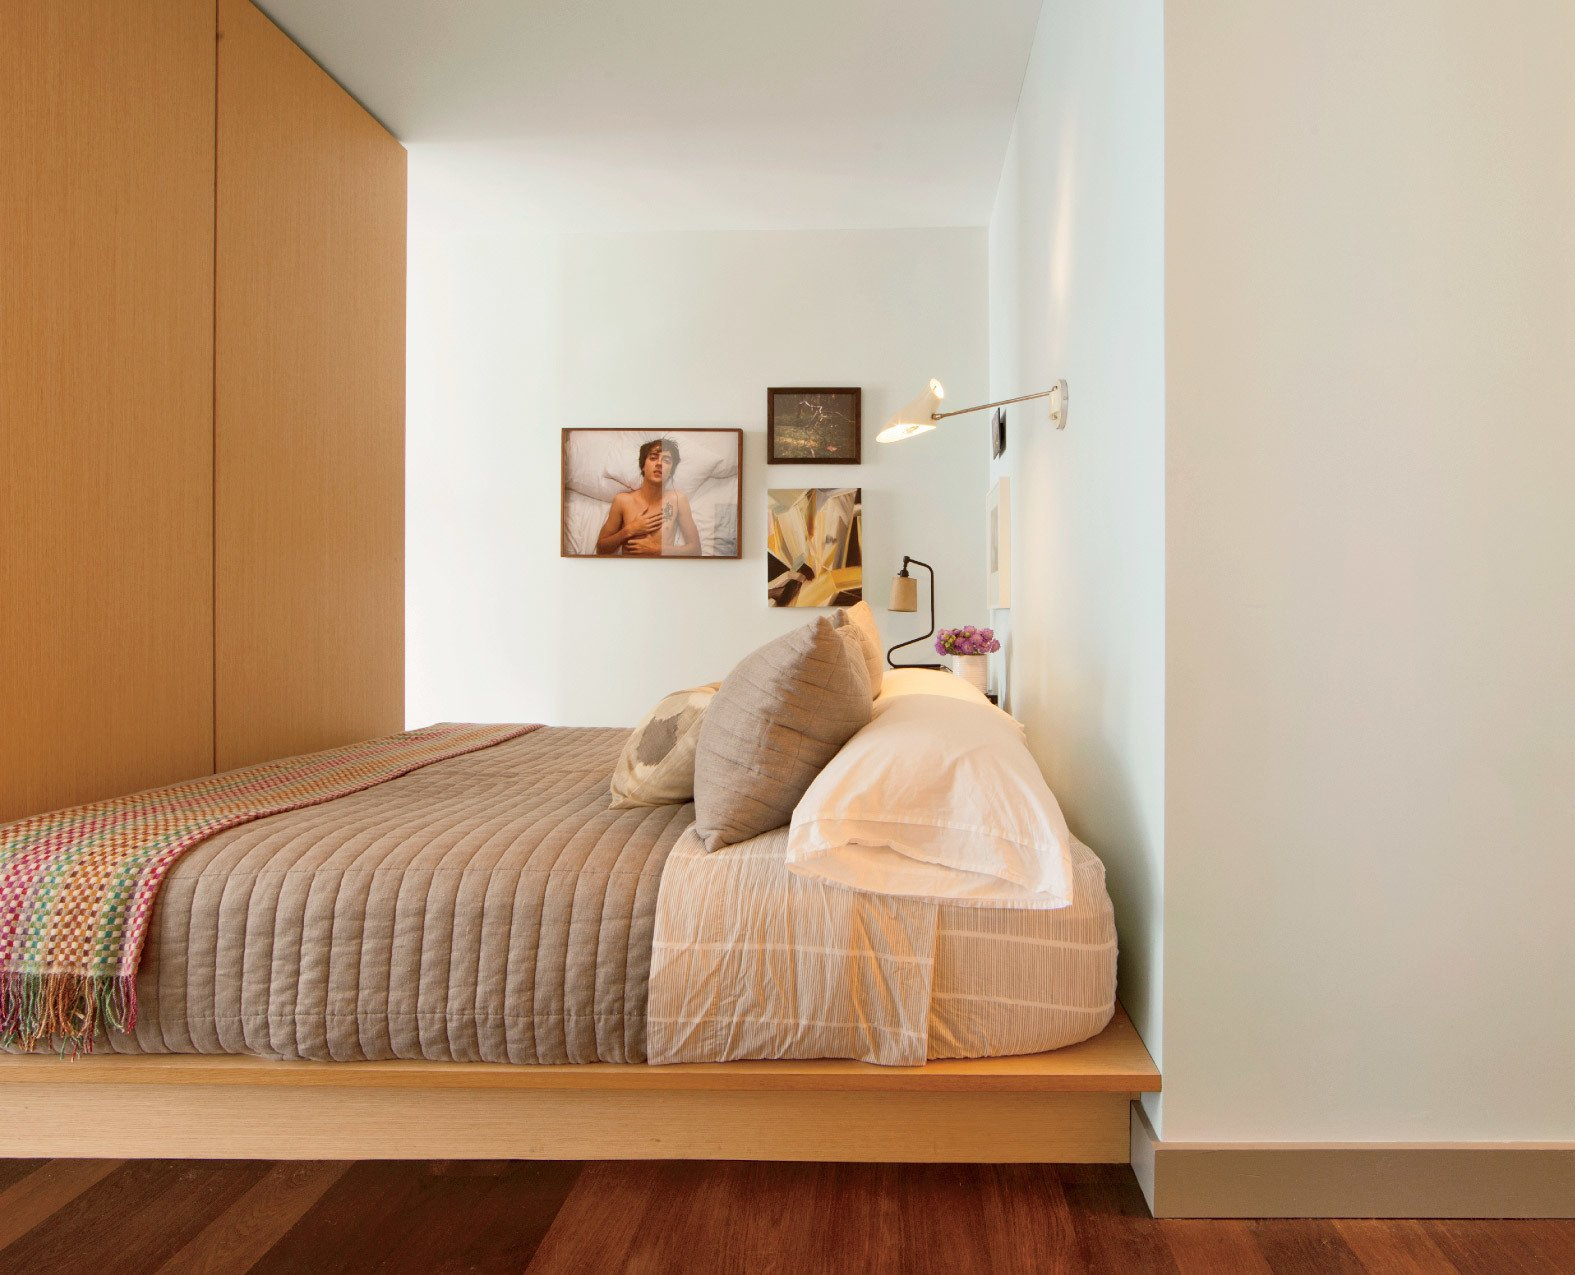 Bedroom, Bed, and Wall Lighting Dufner also designed the bed, which features storage panels under the mattress.  Photo 2 of 6 in This Luxurious Apartment in Greenwich Village Is Only 520 Square Feet